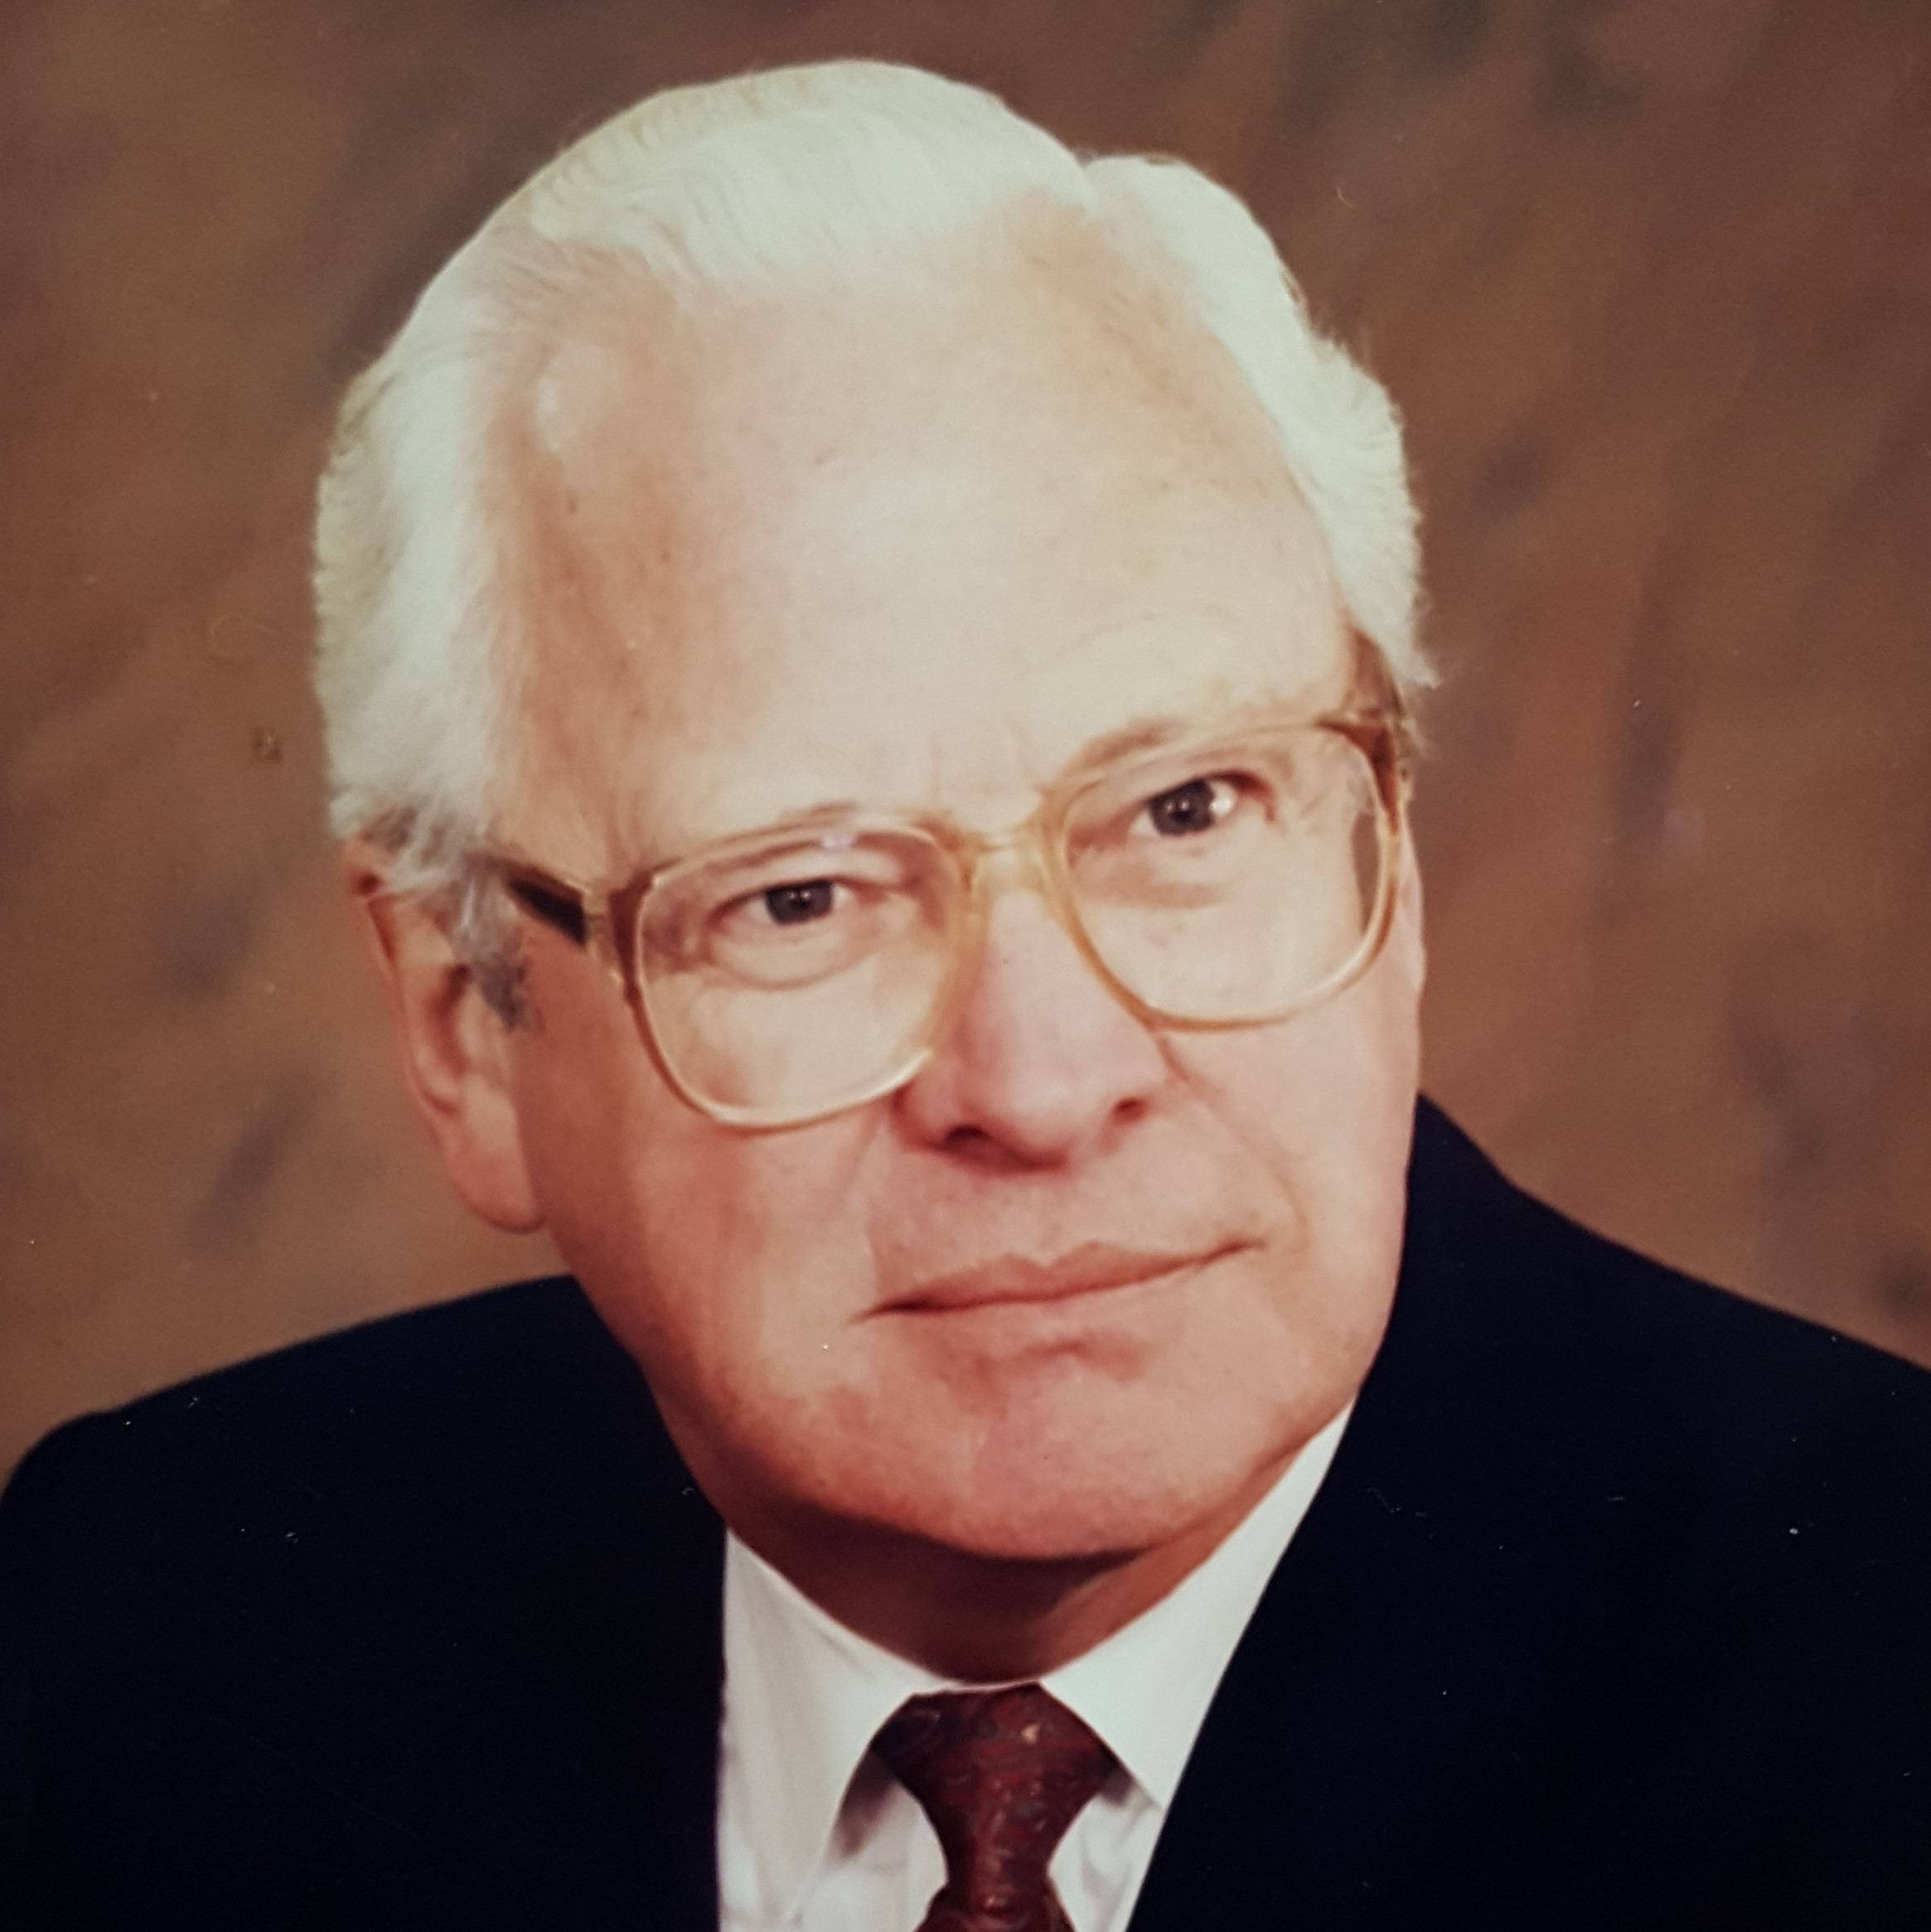 hugh spence hardy obituaries hugh spence hardy